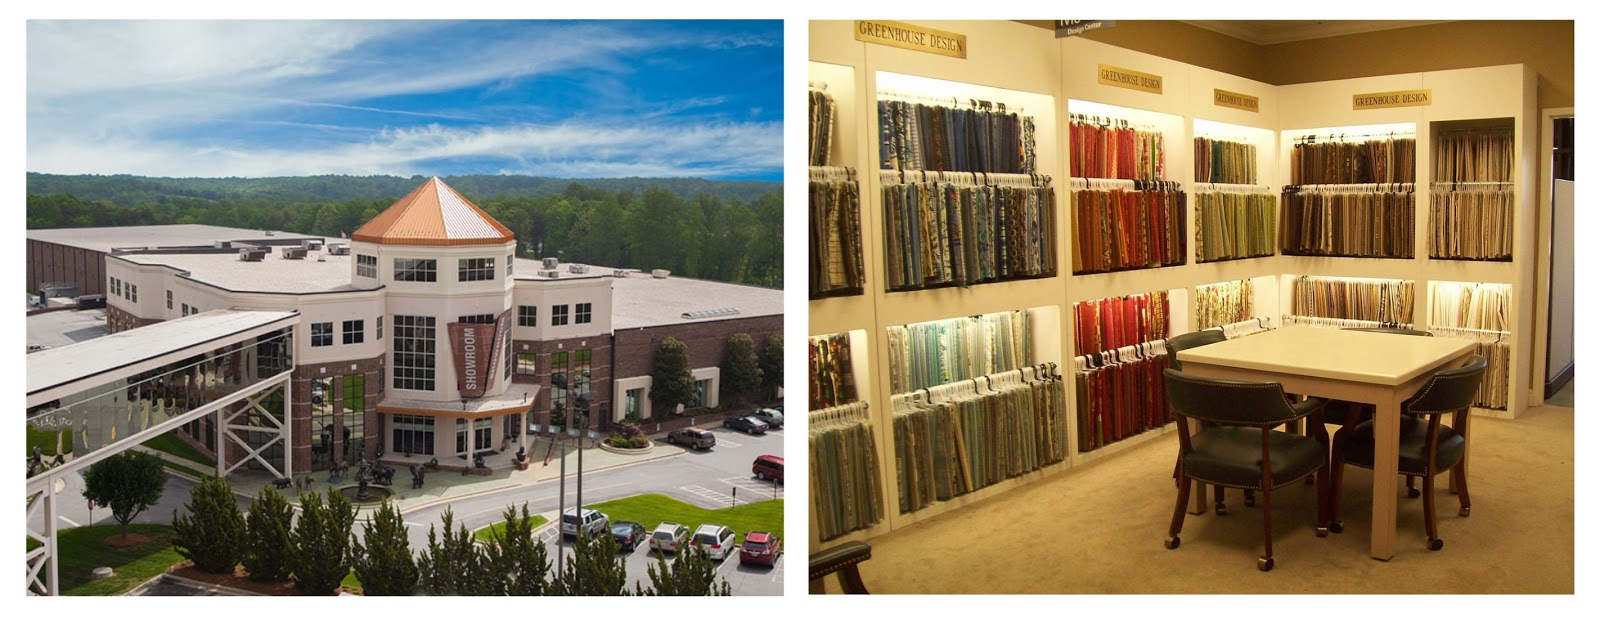 Greenhouse fabrics greenhouse fabrics partners with Furniture land south